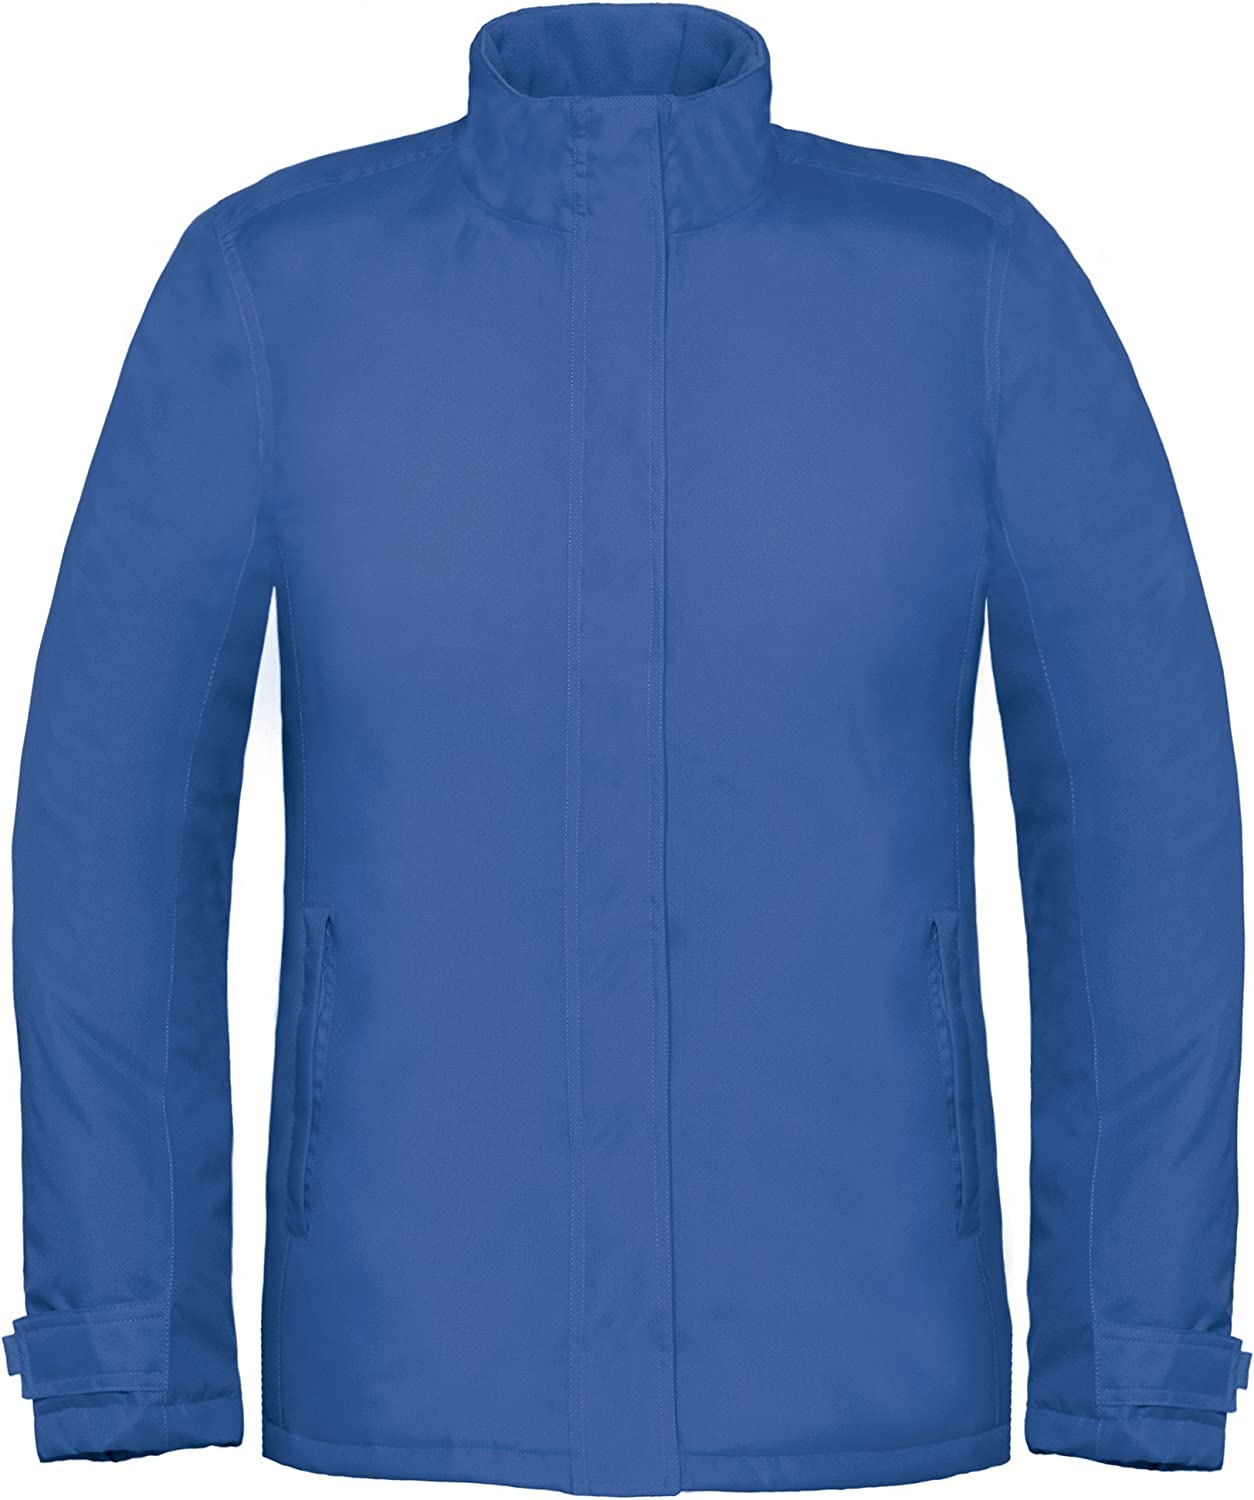 B and C B&C Womens Ladies Premium Real+ Windproof Waterproof ThermoIsolated Jacket